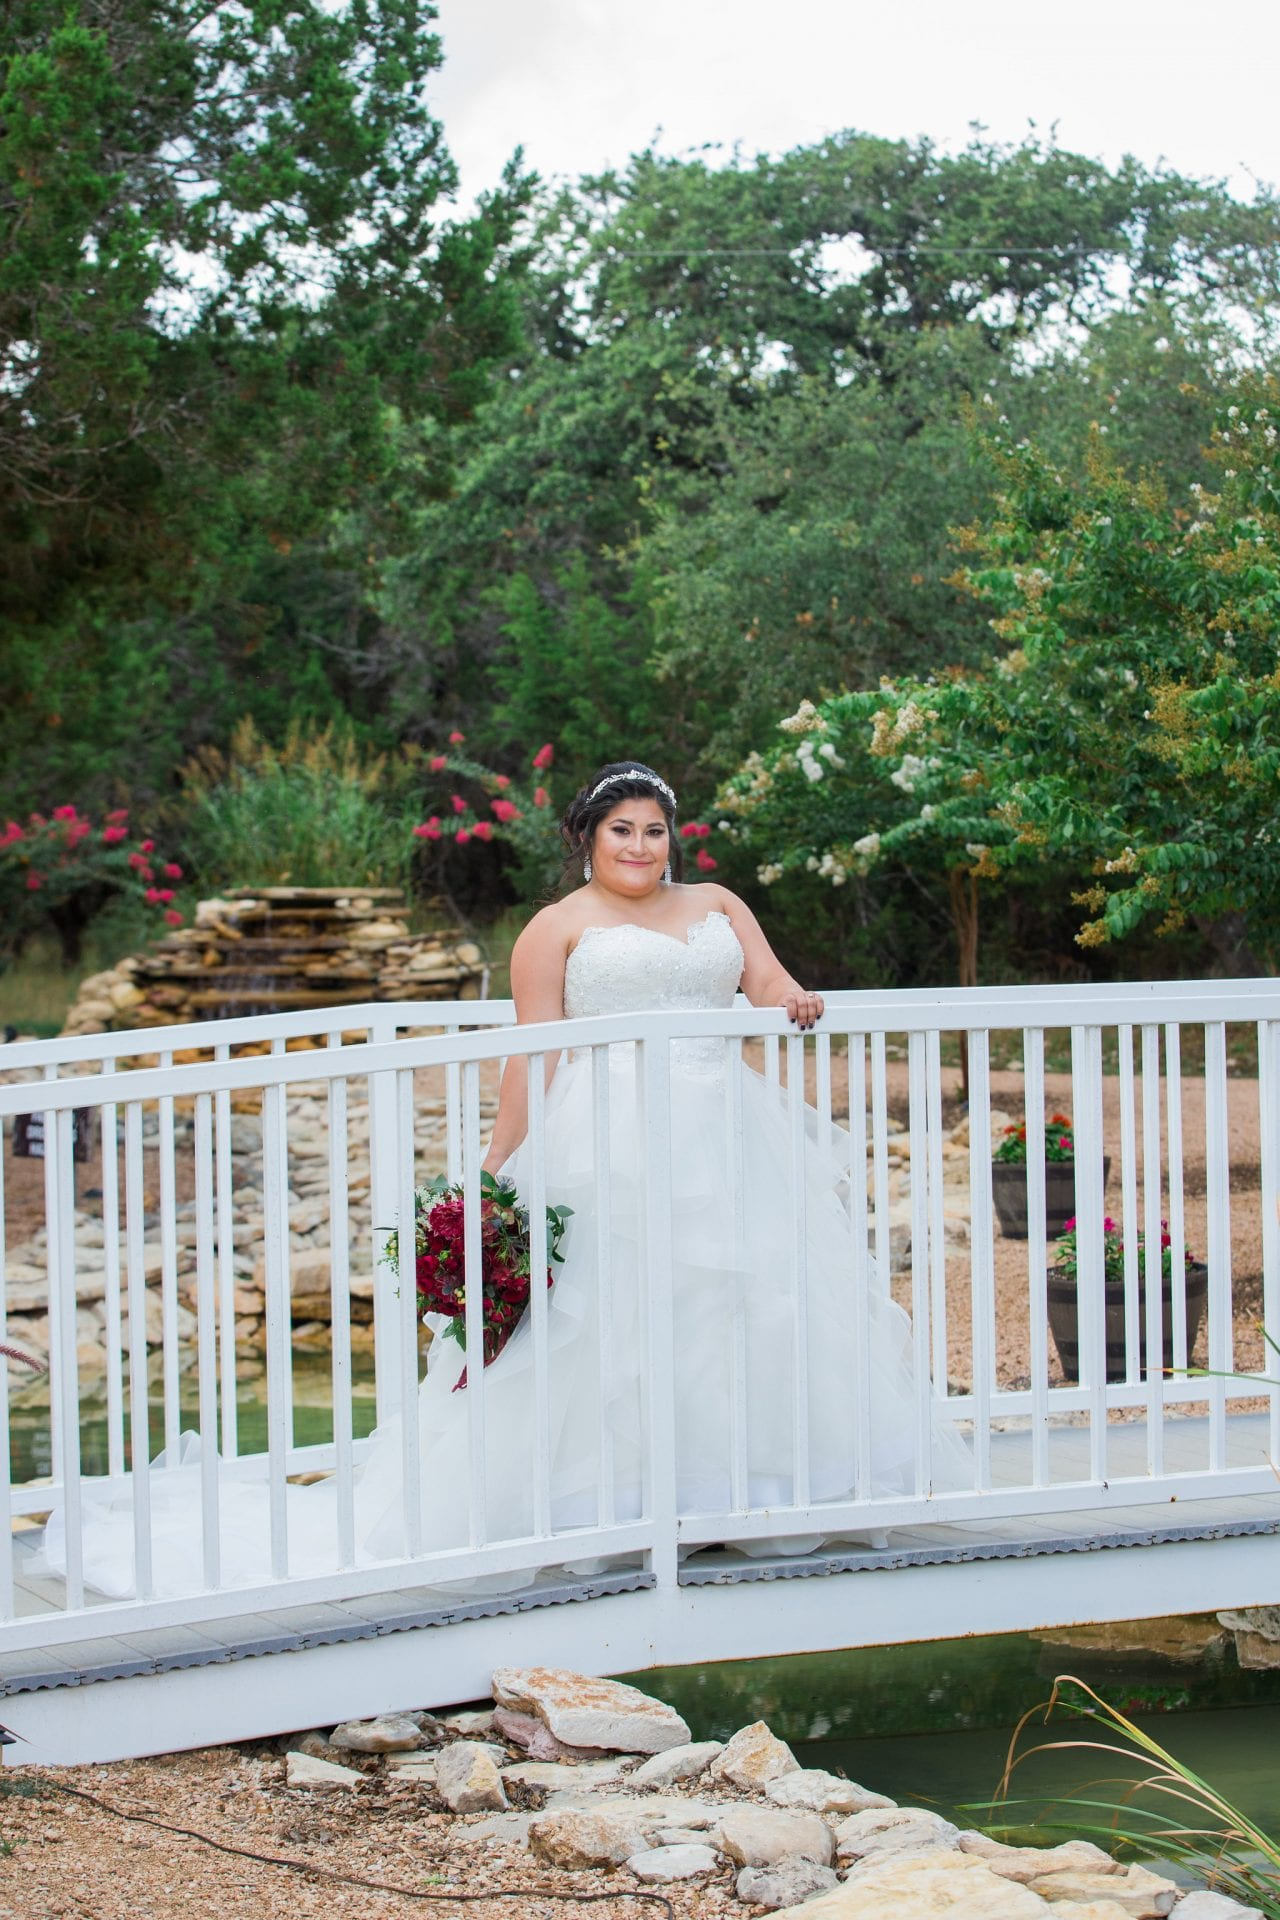 Laura's Bridals at Western Sky on the bridge